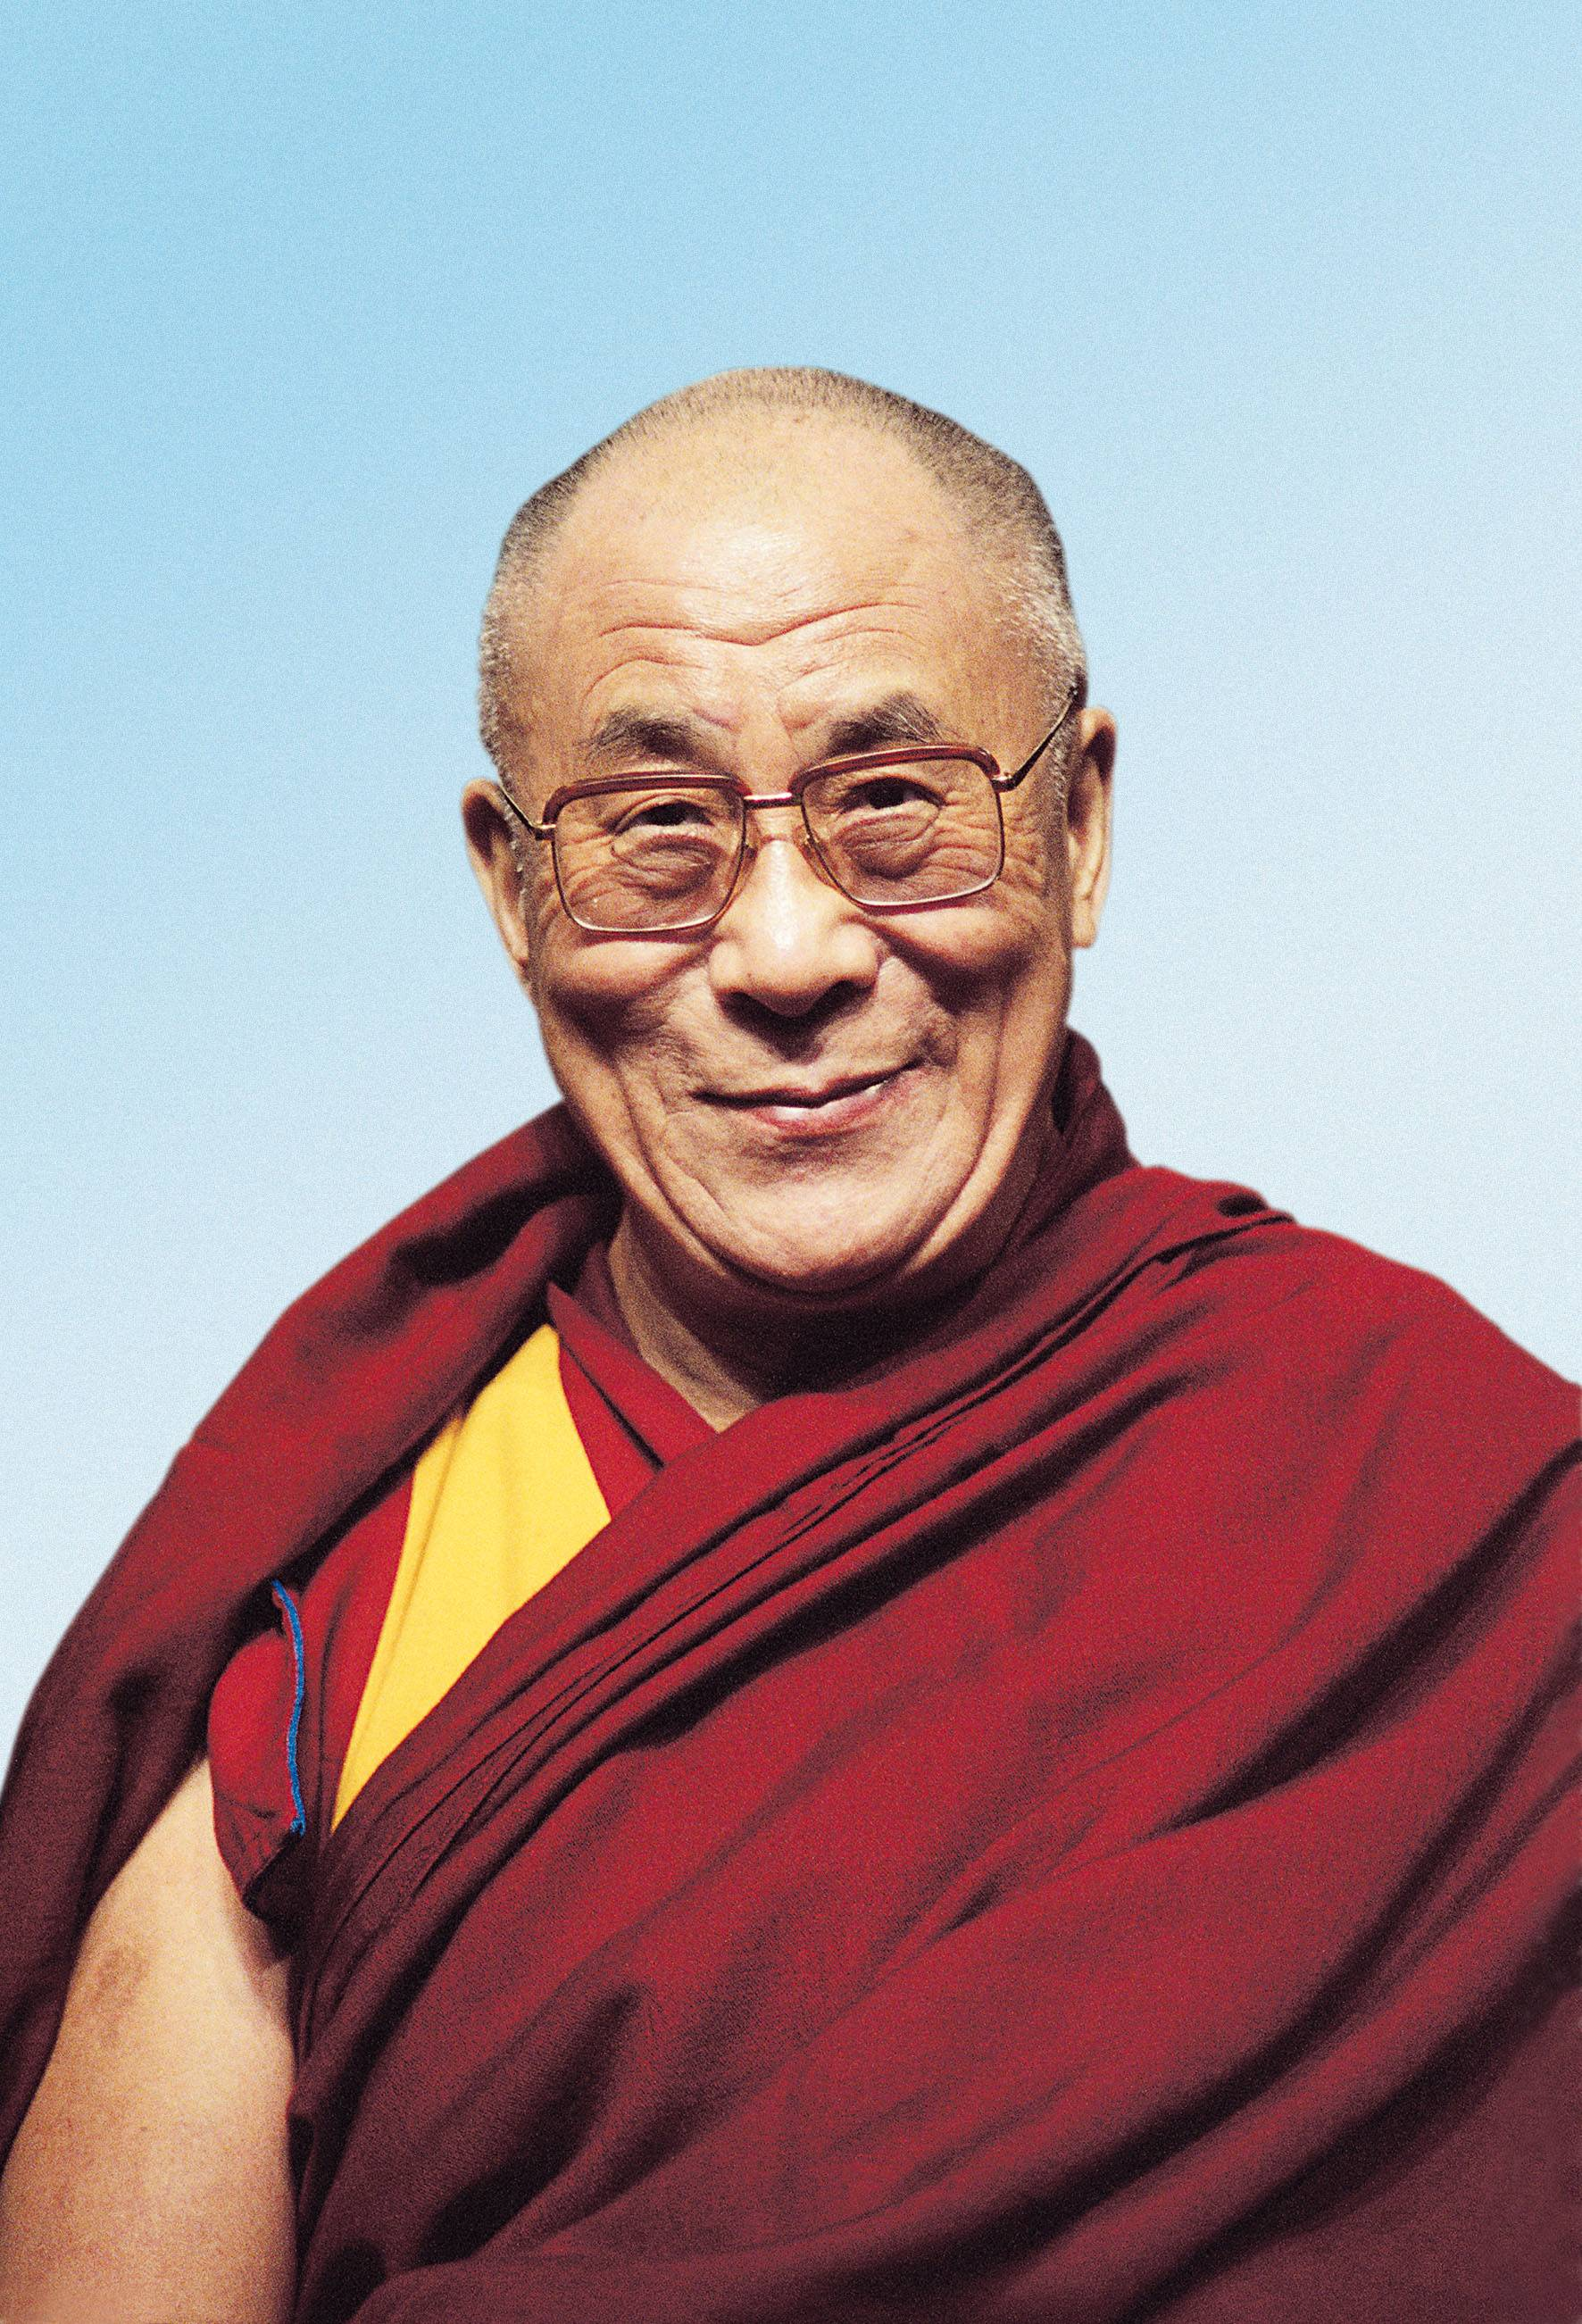 The Dalai Lama Photo Hd Wallpaper Pictures Hh The 14th